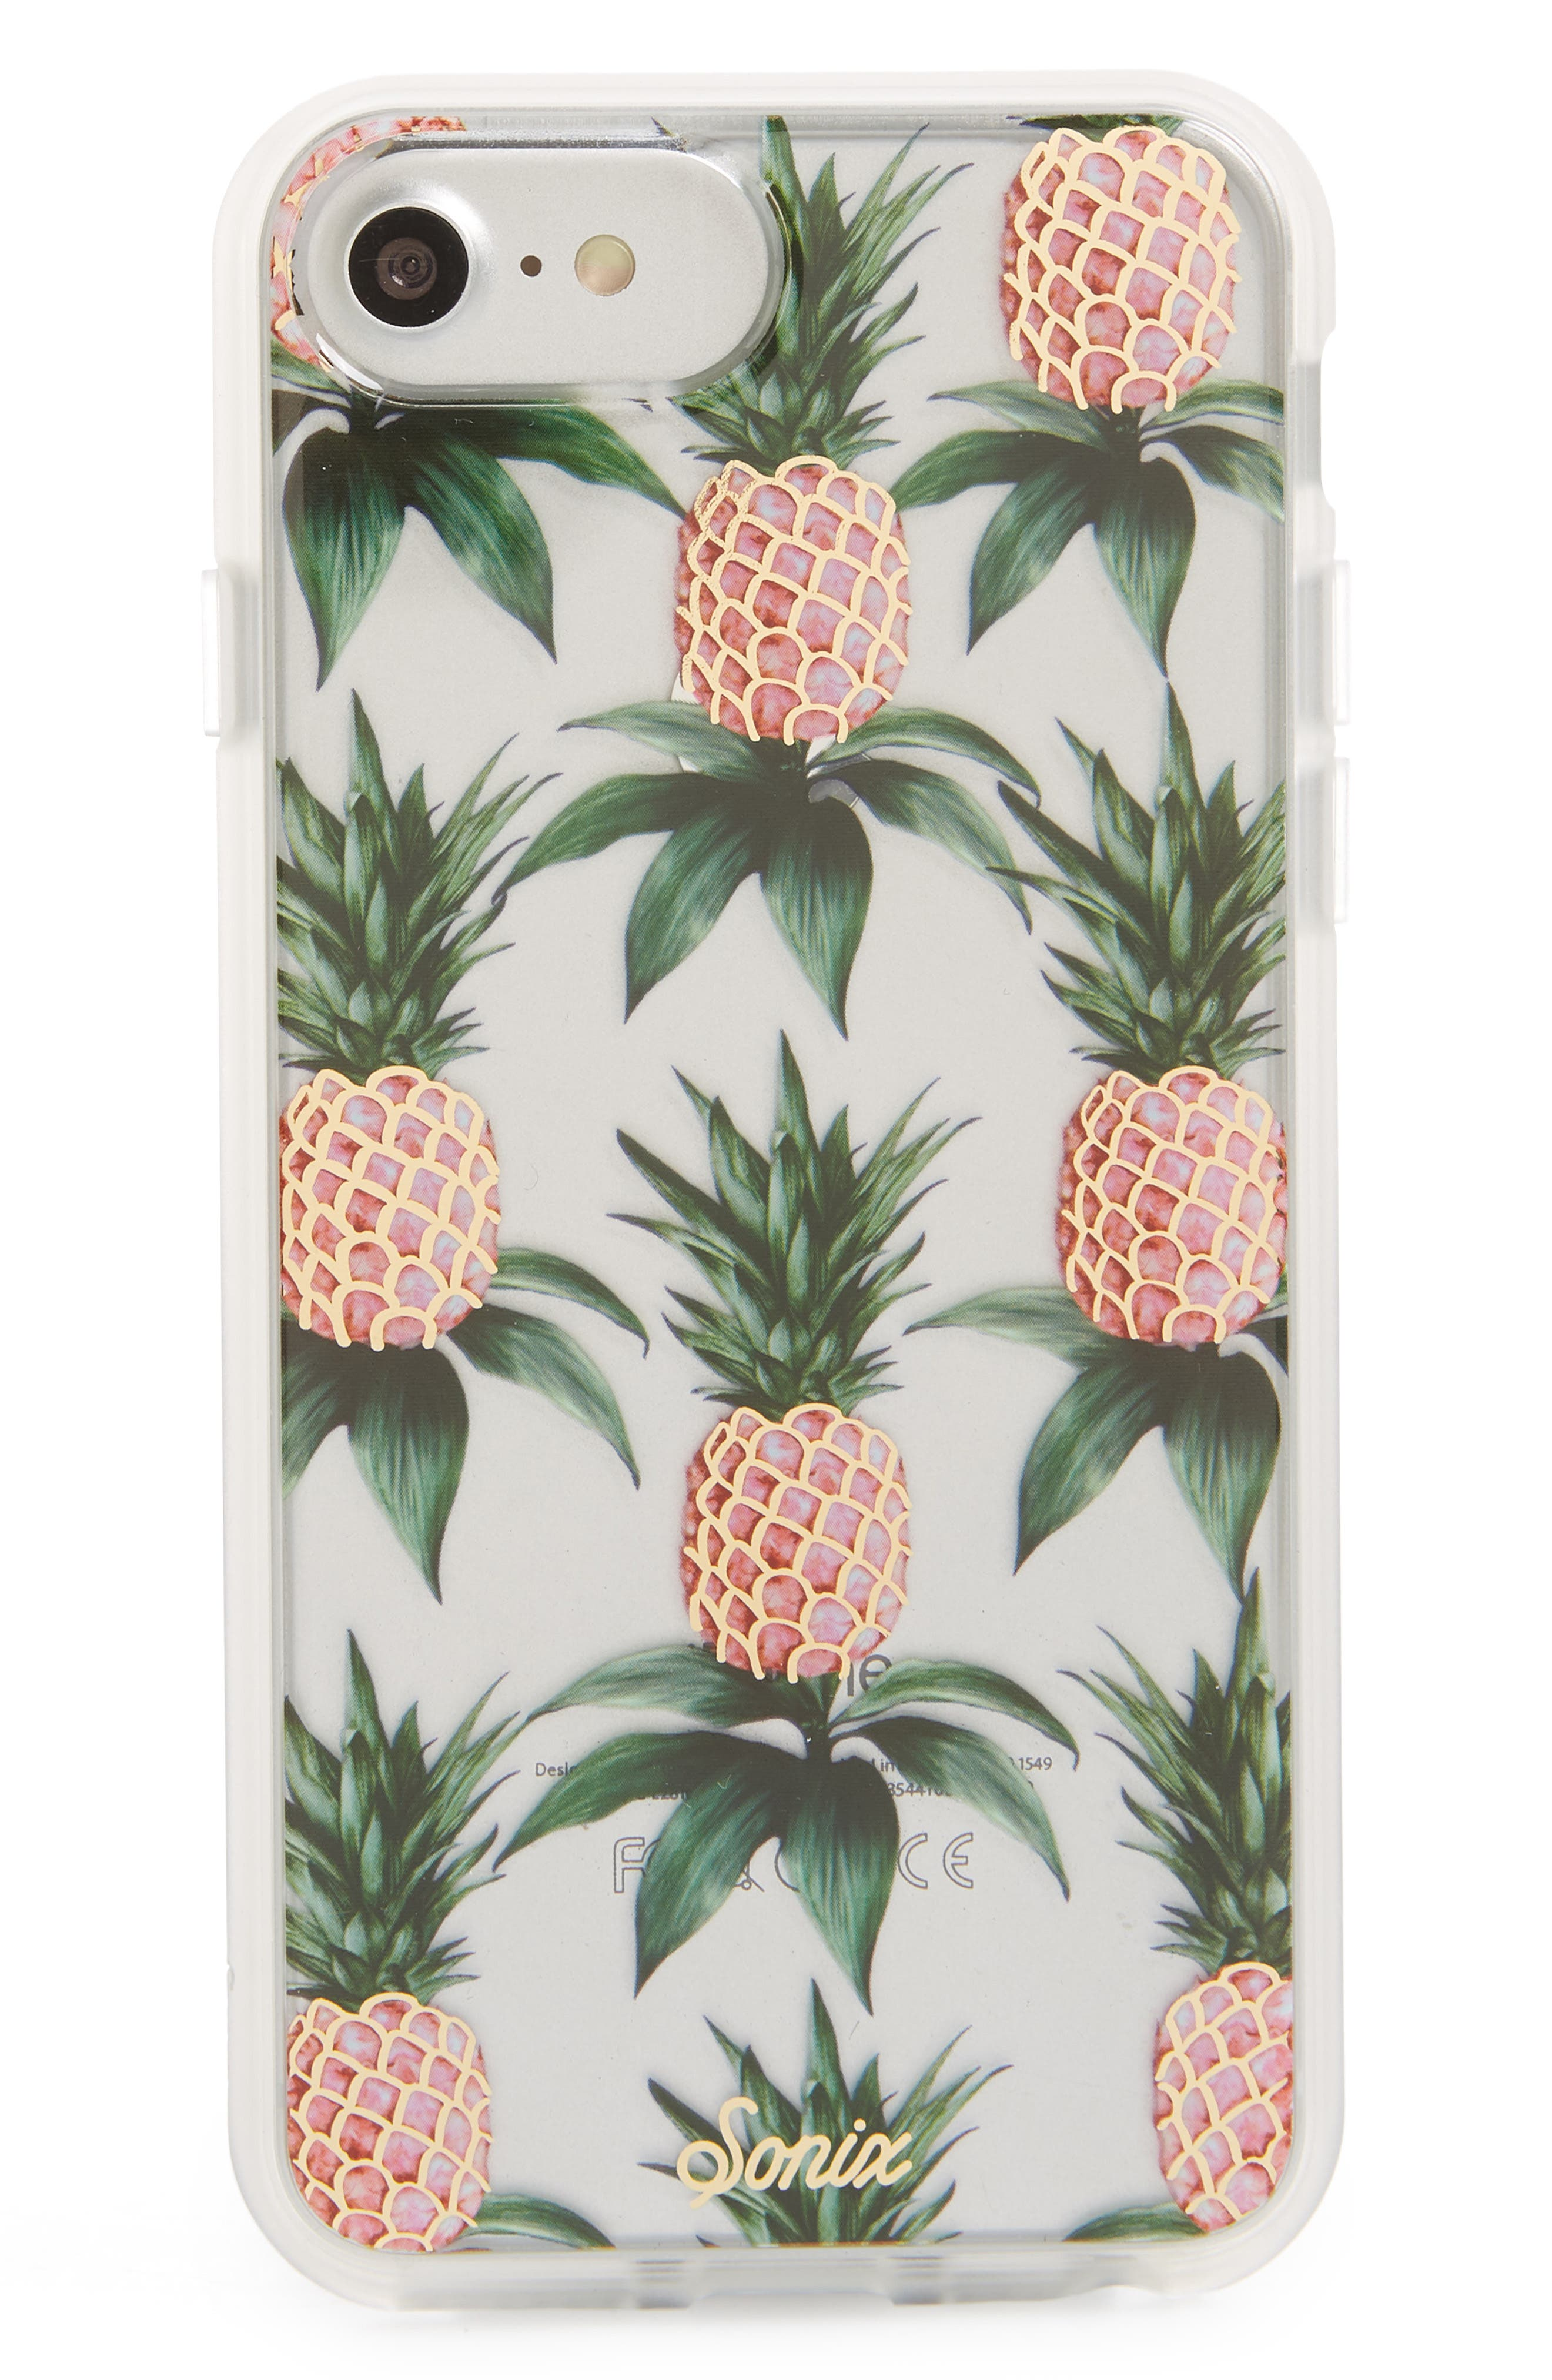 Pink Pineapple iPhone 6/6s/7/8 & iPhone 6/6s/7/8 Plus Case,                             Main thumbnail 1, color,                             Clear/ Multi